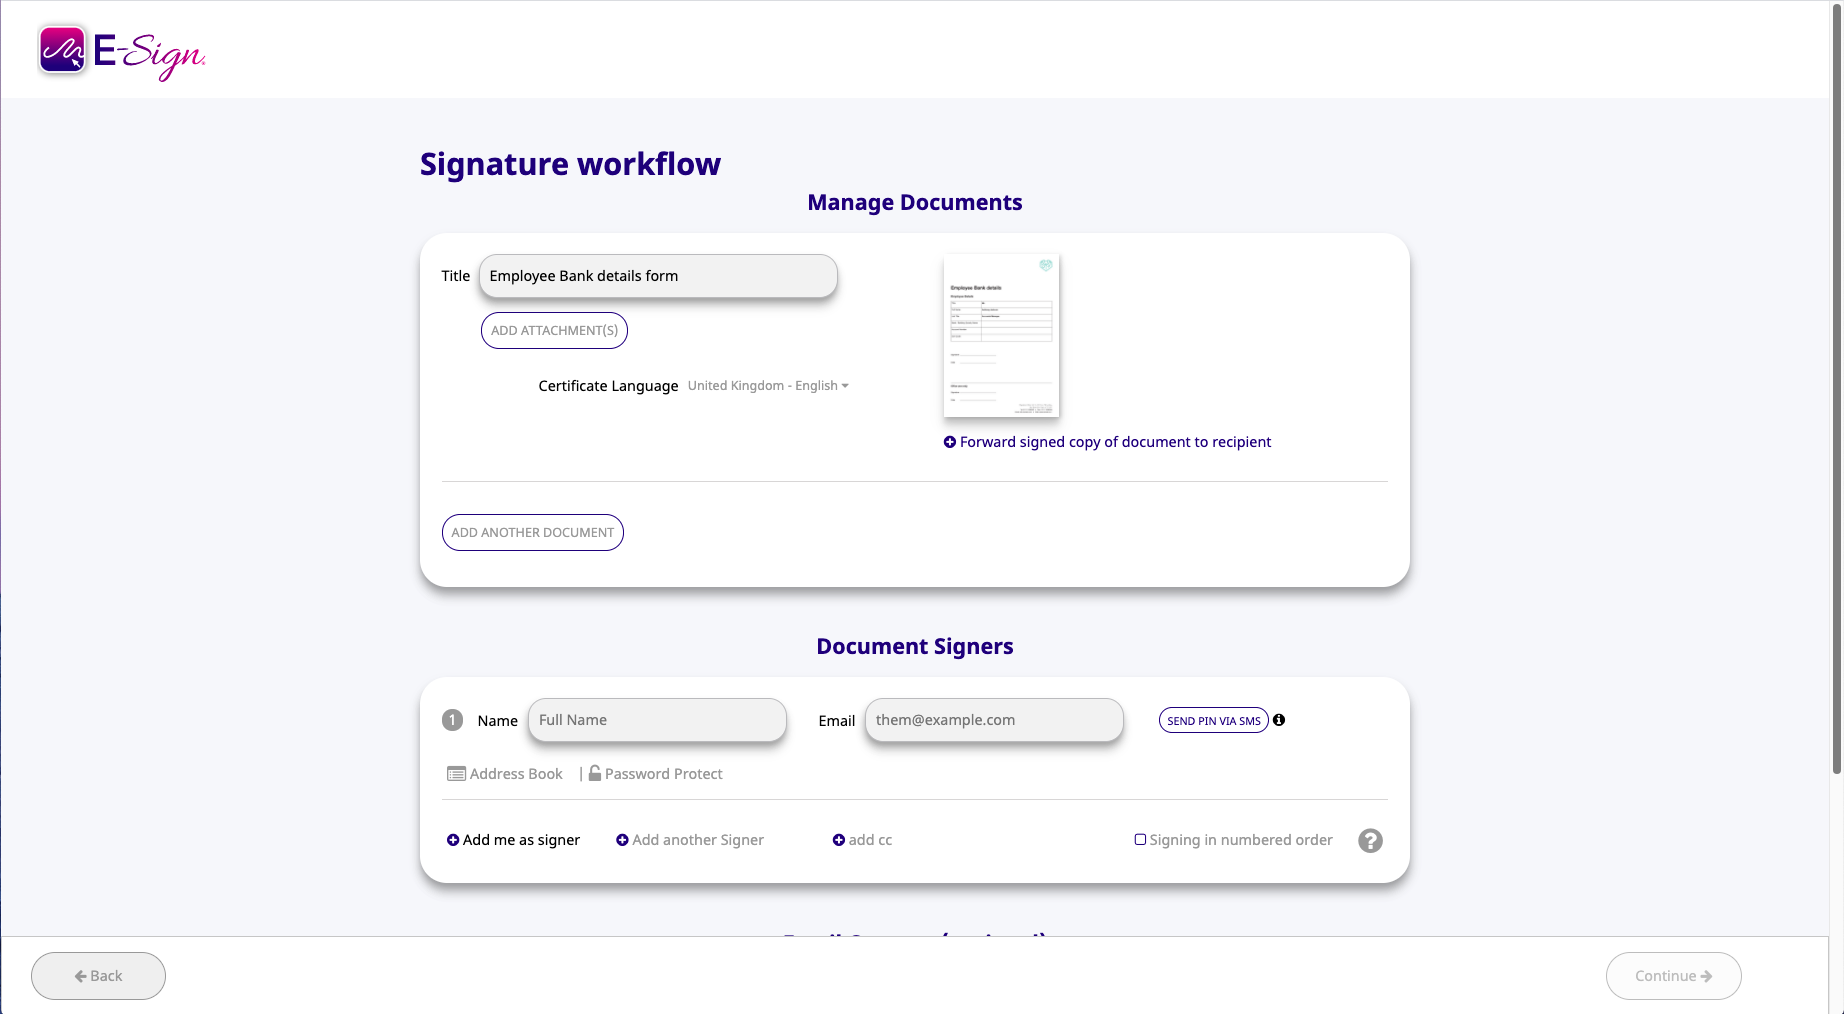 new signature workflow e-sign